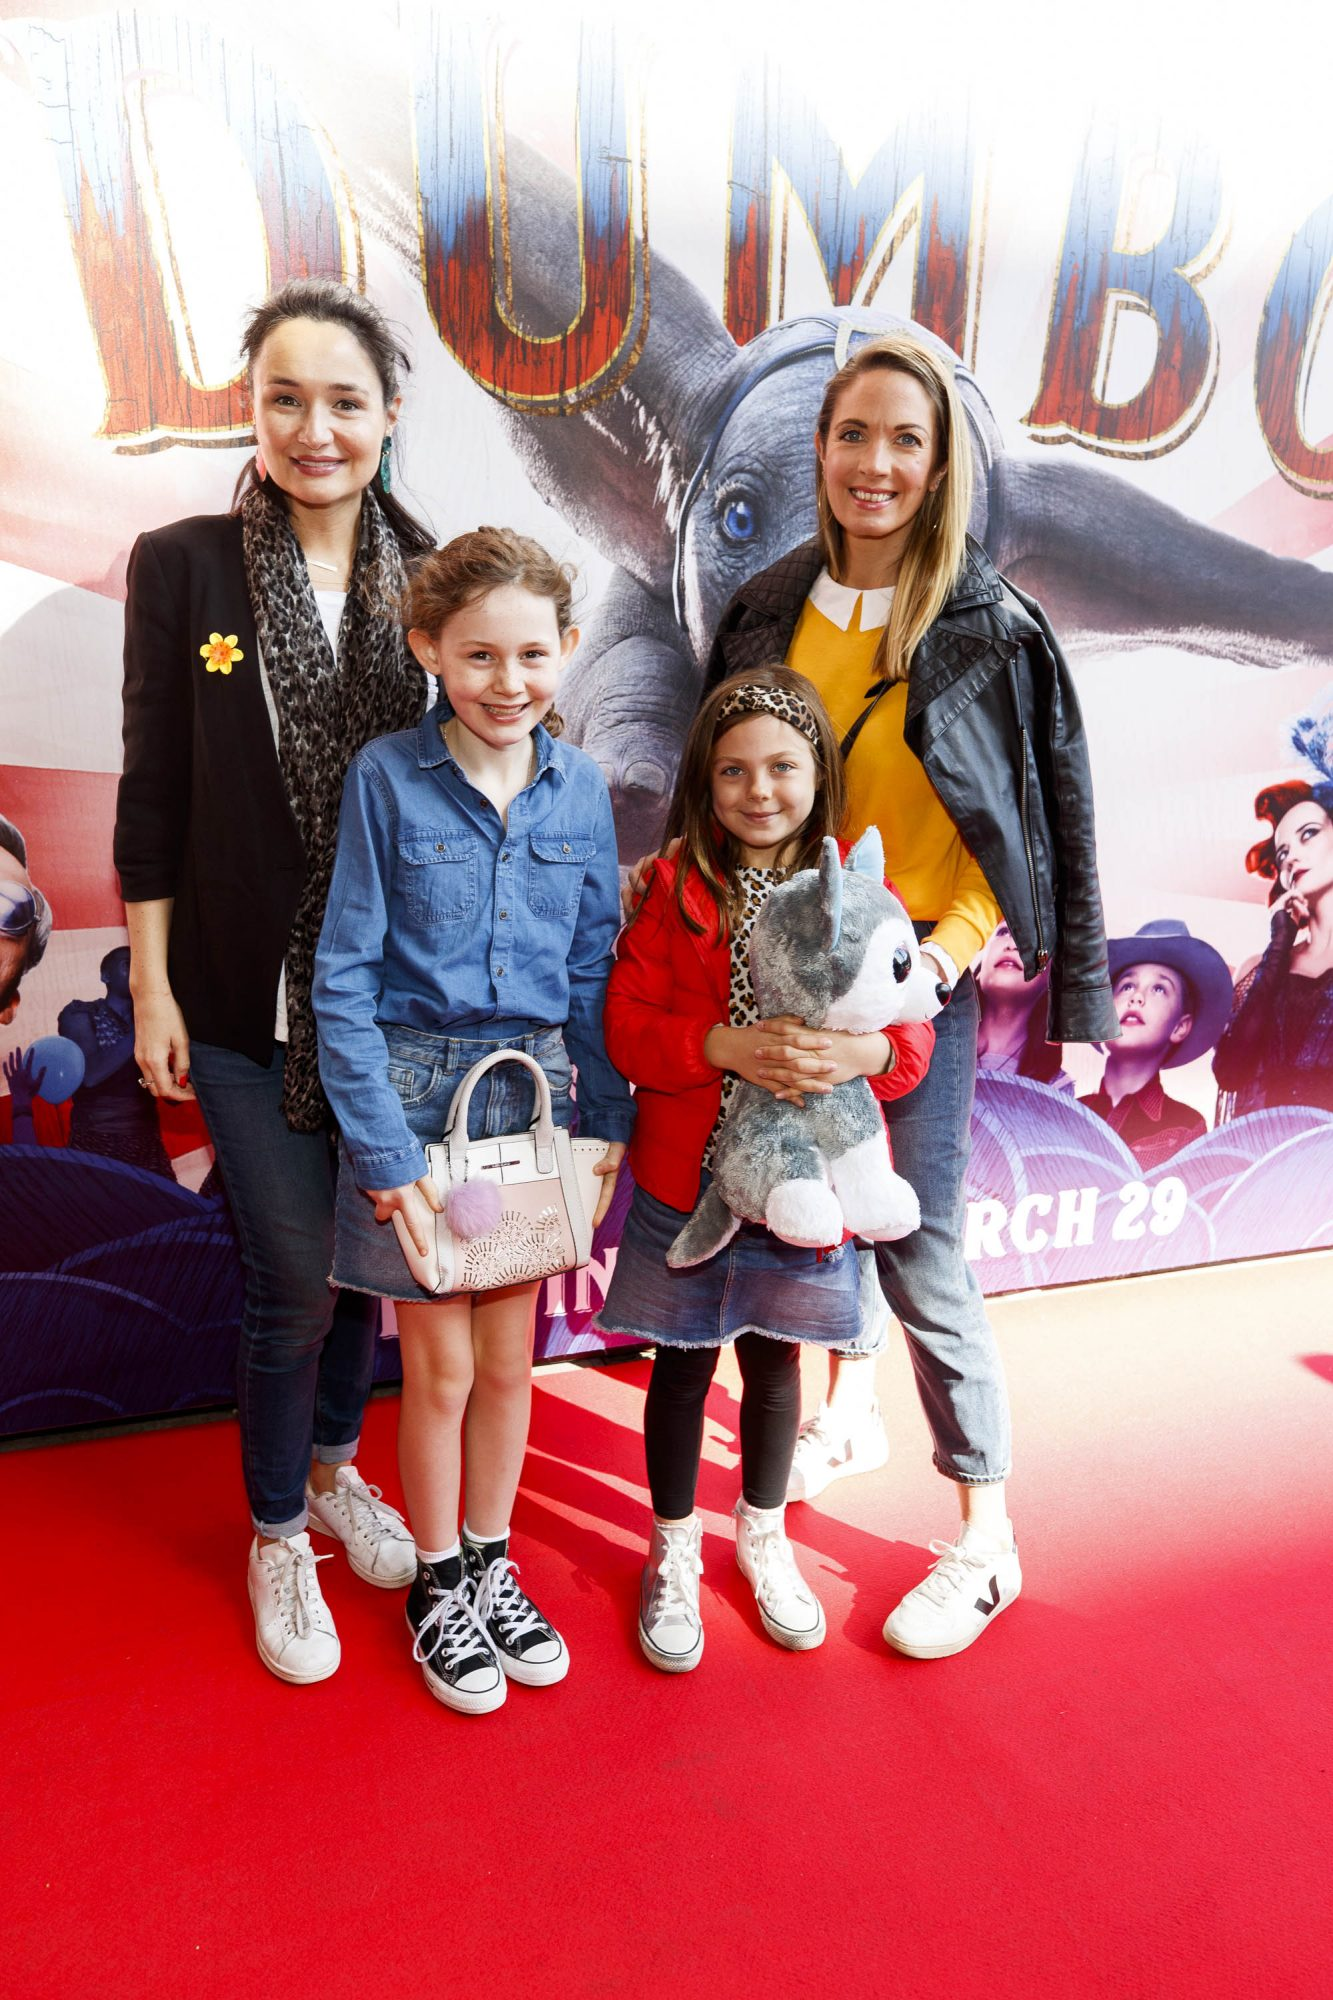 24/03/2019 Lucy O'Driscoll-Edge, Juliet O'Driscoll-Brereton with Fia and Cara Herriet pictured at the Irish Premiere screening of Disney's DUMBO in the Light House Cinema Dublin. Picture: Andres Poveda